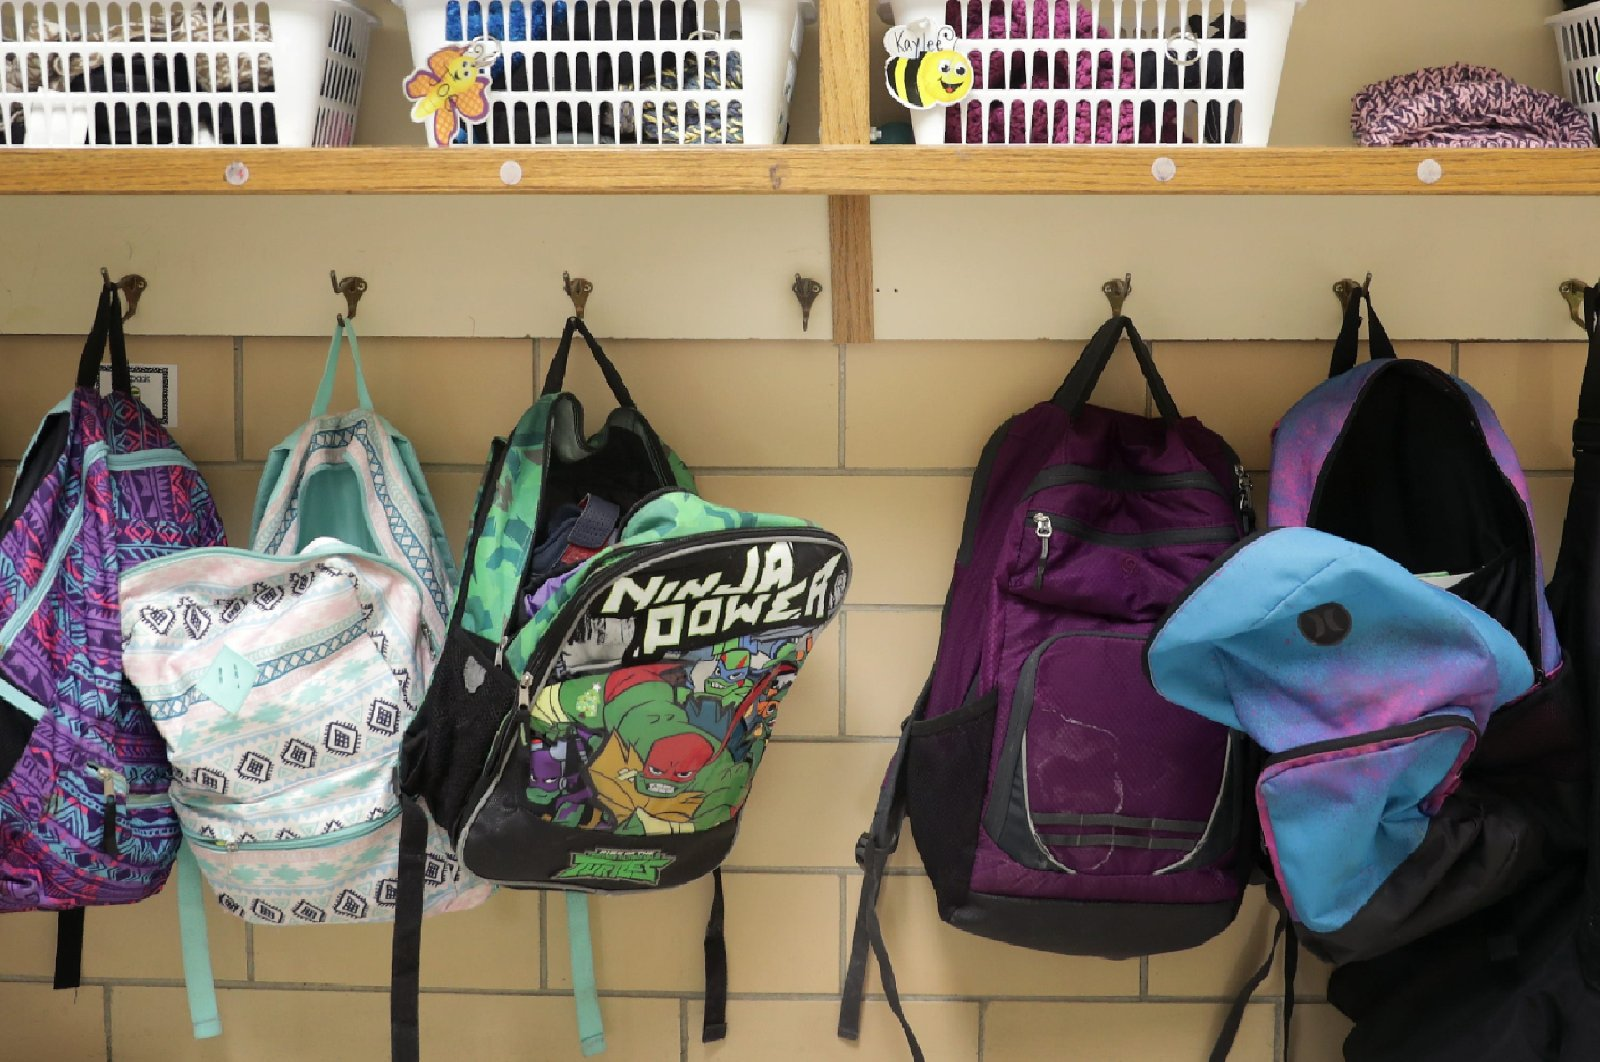 Colorful backpacks hang on a coat rack at Lincoln Elementary School, in Appleton, Wisconsin, U.S., Feb. 4, 2020. (Reuters File Photo)